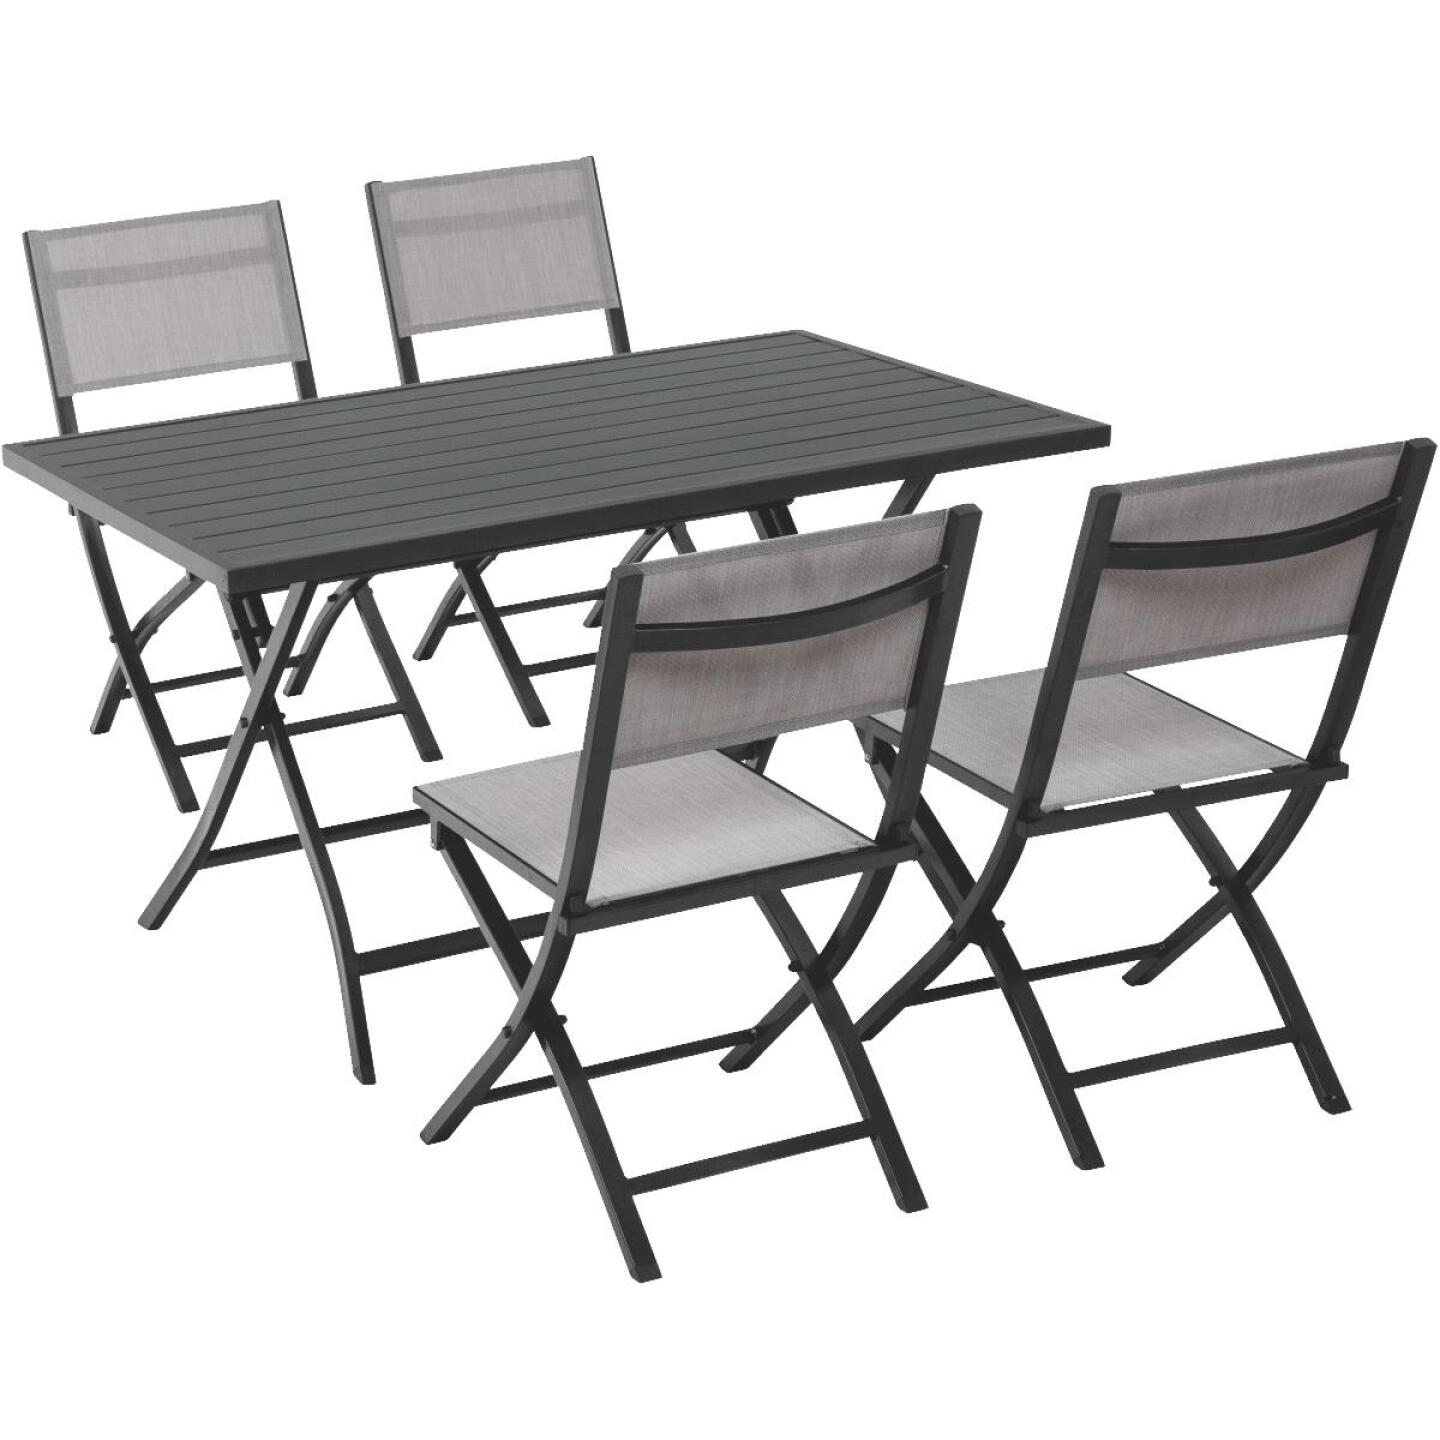 Outdoor Expressions Ash 5-Piece Aluminum Folding Dining Set Image 1